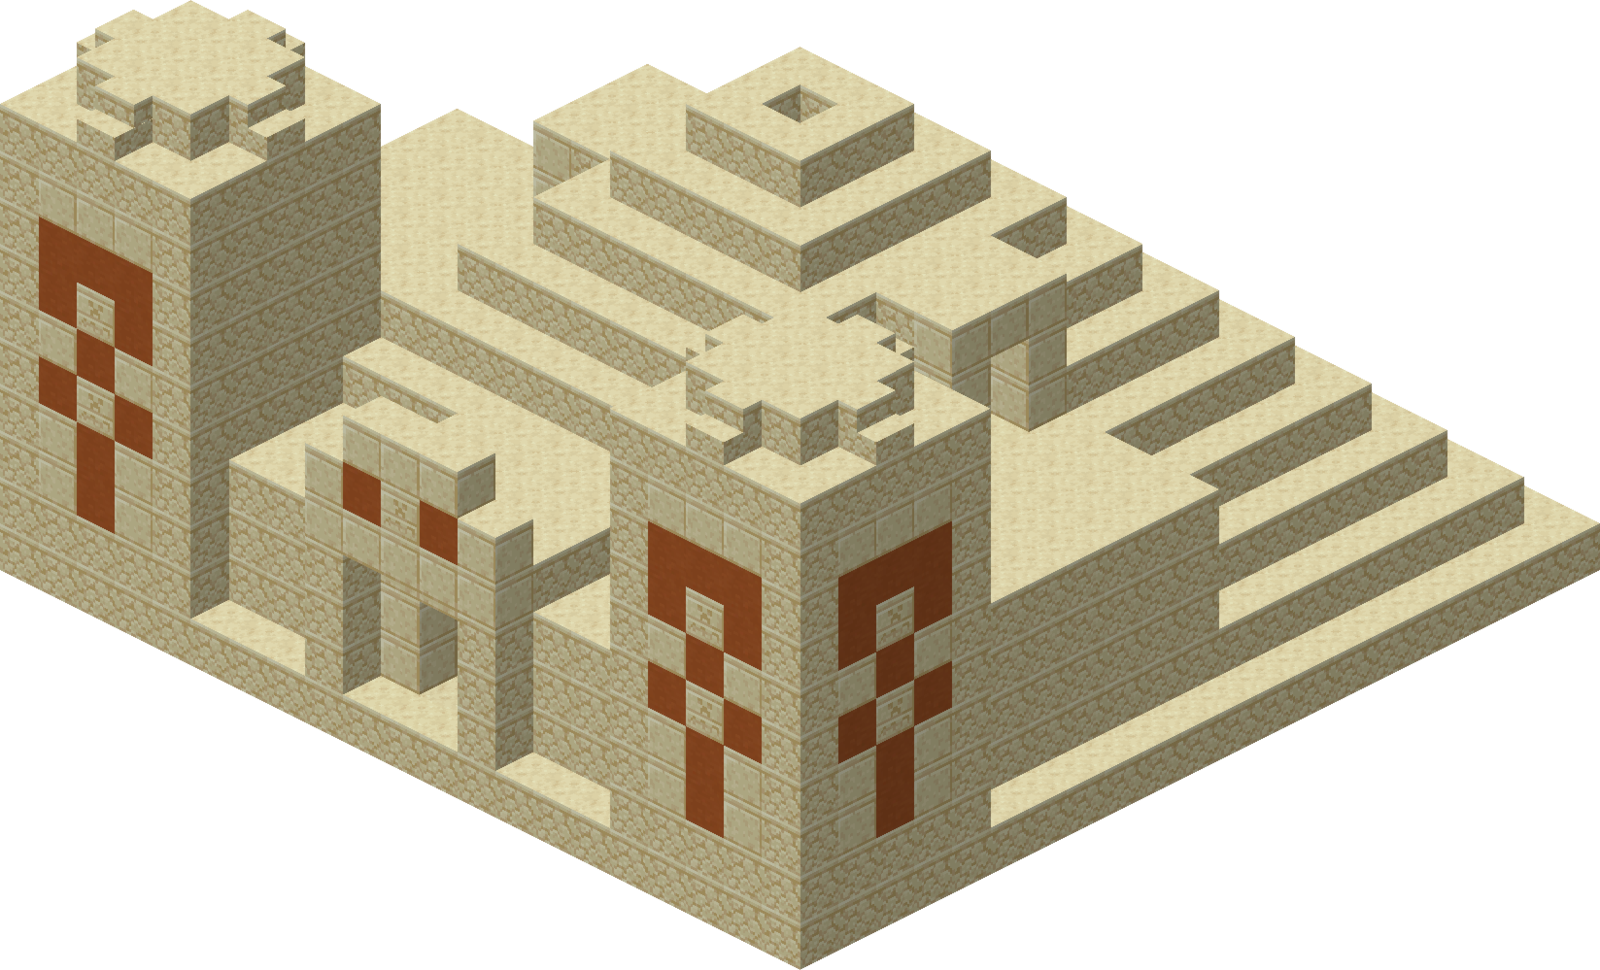 File:DesertTempleMinecraft.png